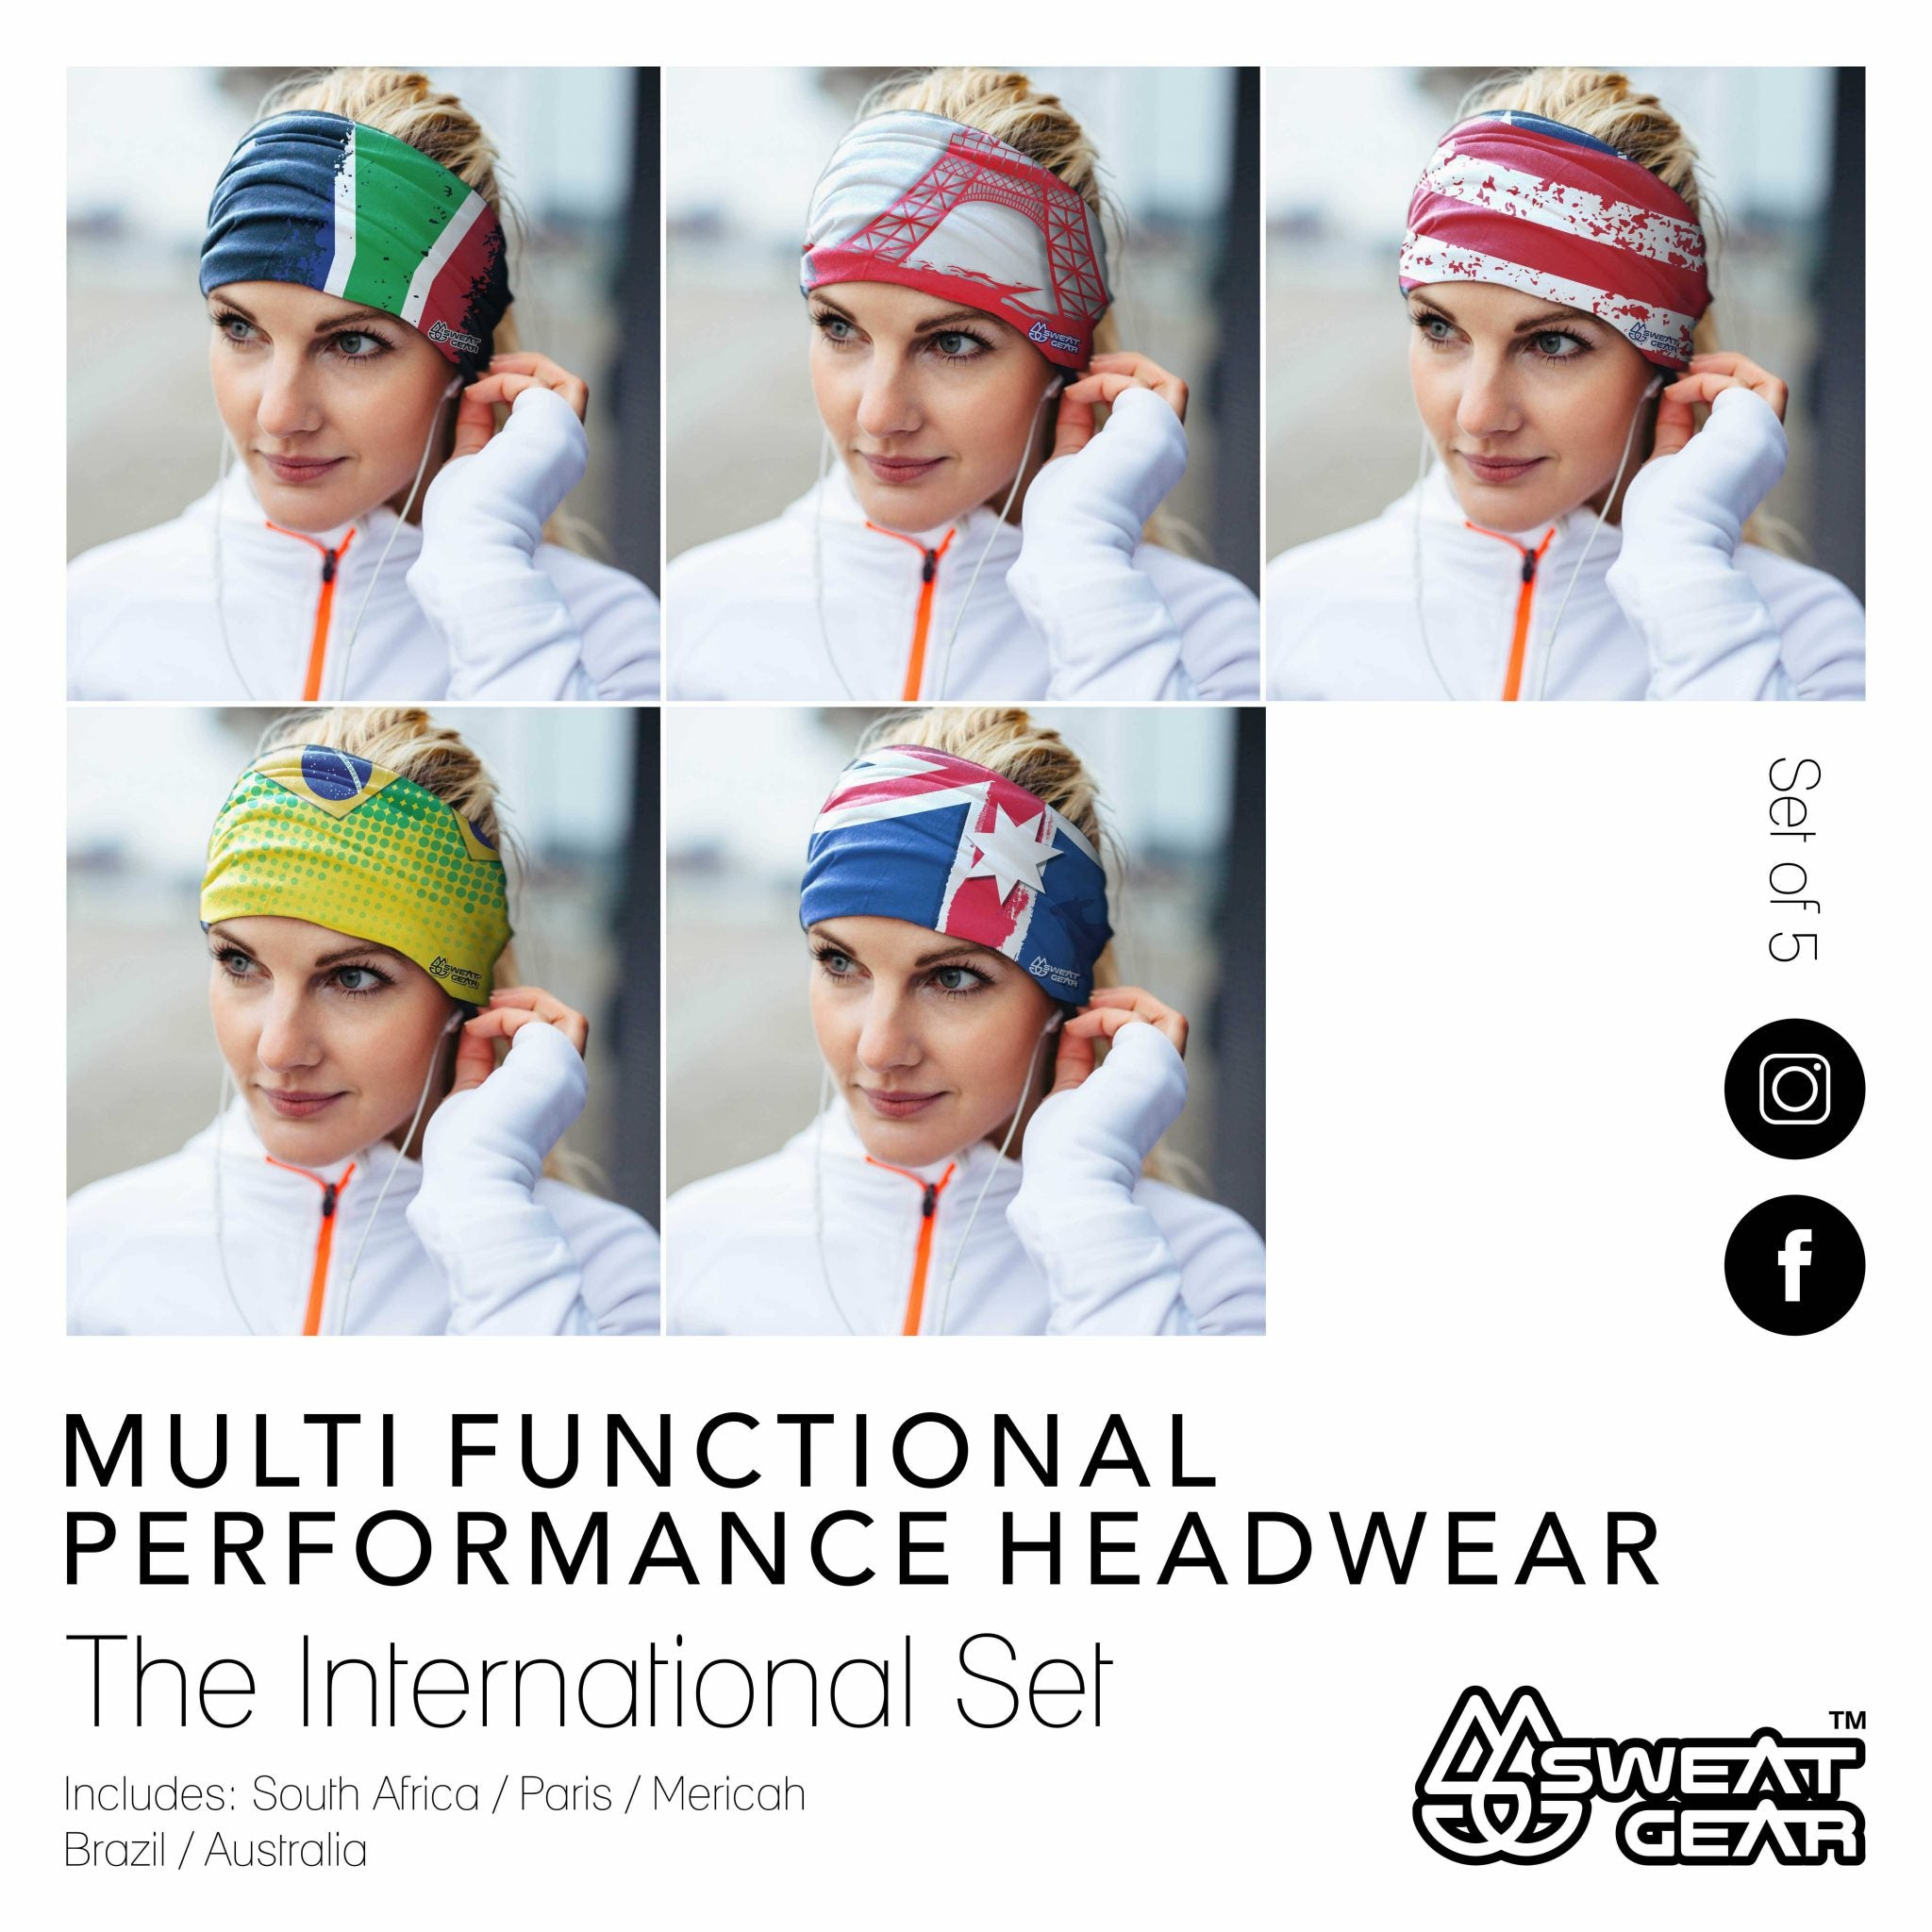 The International Set (Sweatgear)